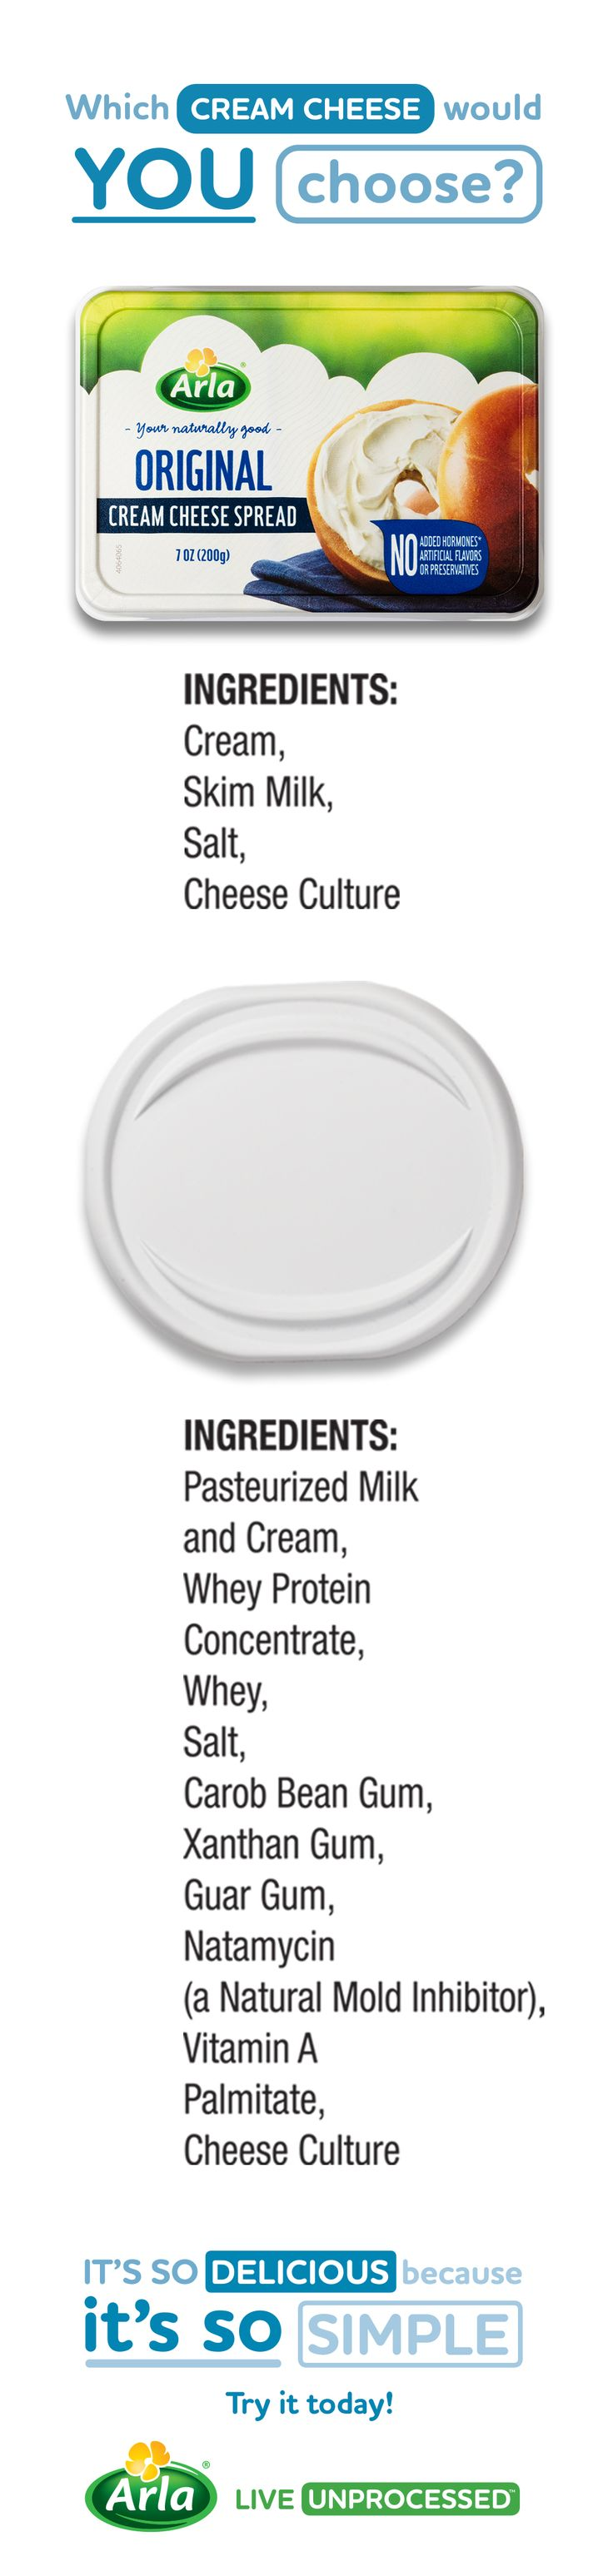 Arla Original cream cheese is so delicious because it's so simple. Don't buy it? You don't have to! Try Arla FREE for a limited time in a participating retailer near you with a coupon linked here.